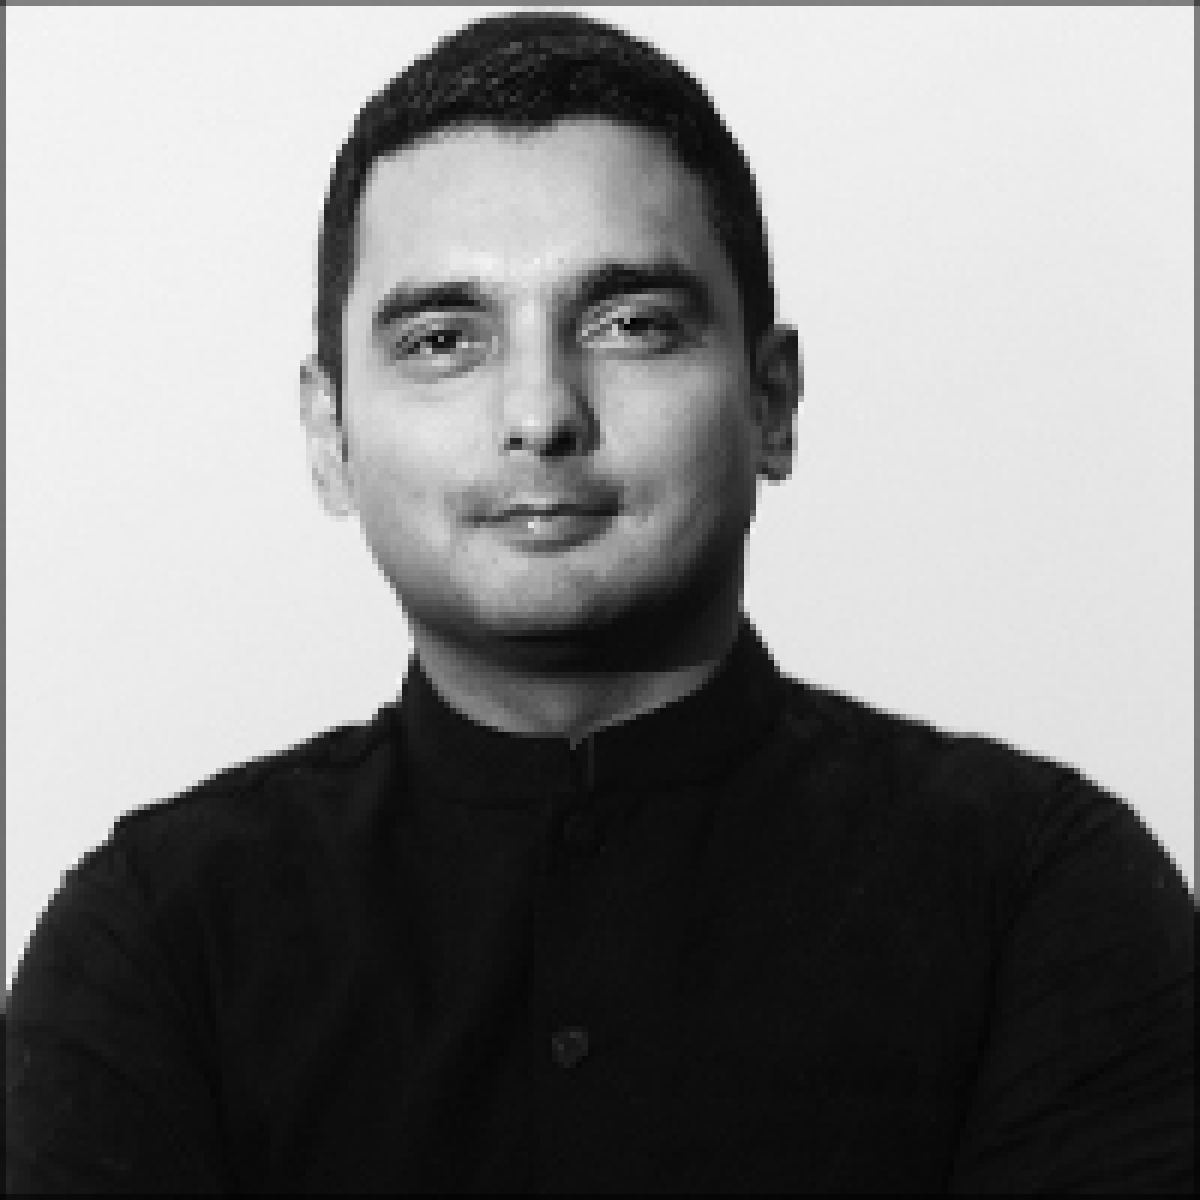 Sumanto Chattopadhyay appointed as Chairman and Chief Creative Officer of Soho Square, India